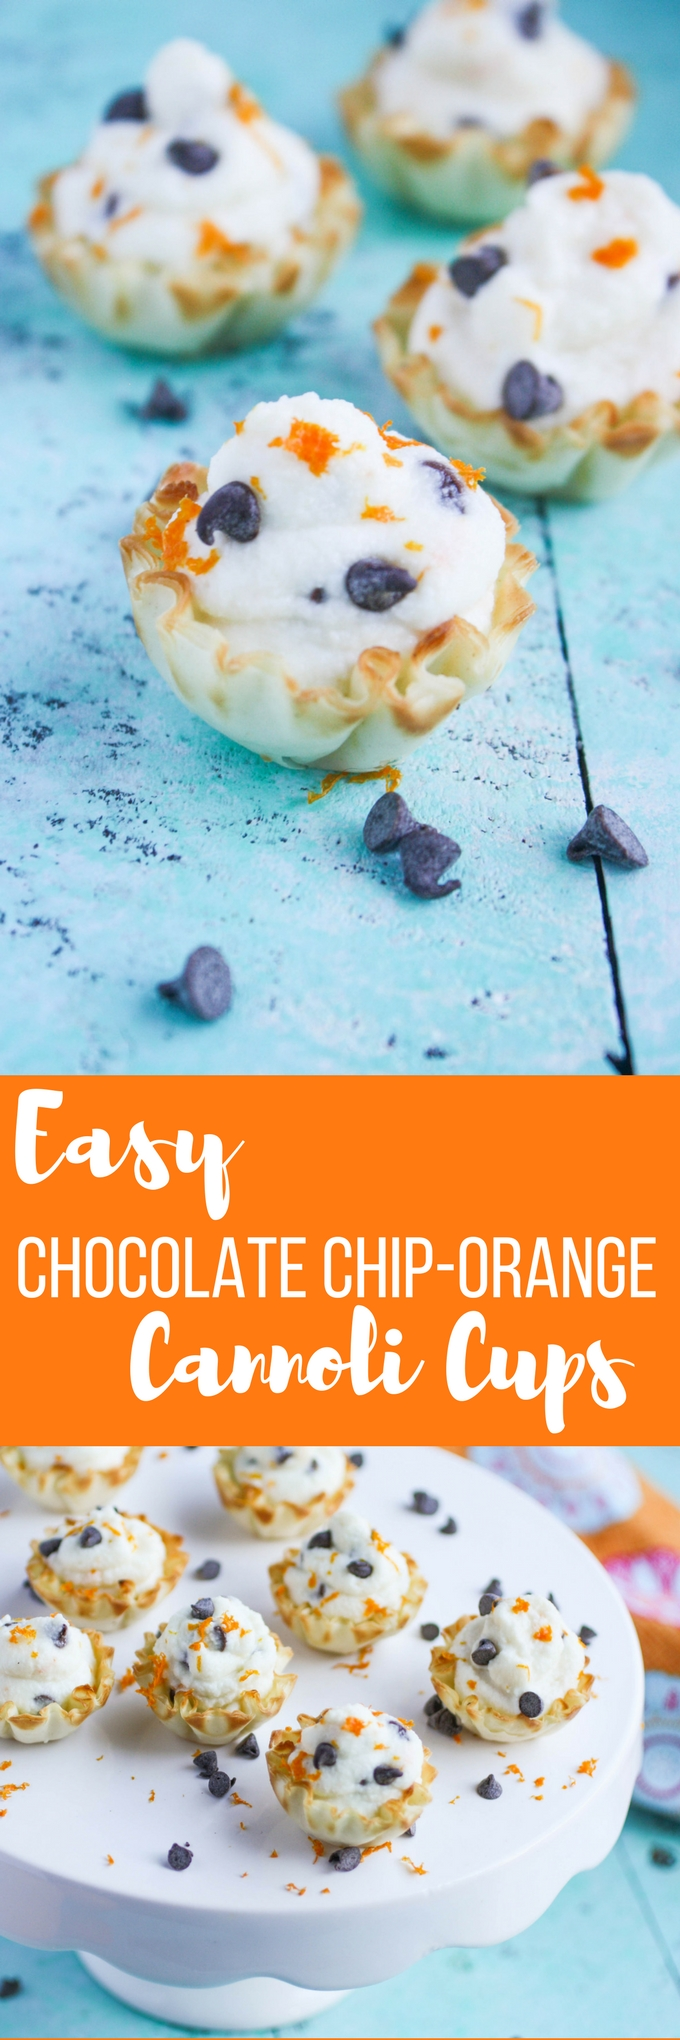 Easy Chocolate Chip-Orange Cannoli Cups are a tasty treat for any celebration! You'll love how easy these cannoli cups are to make!